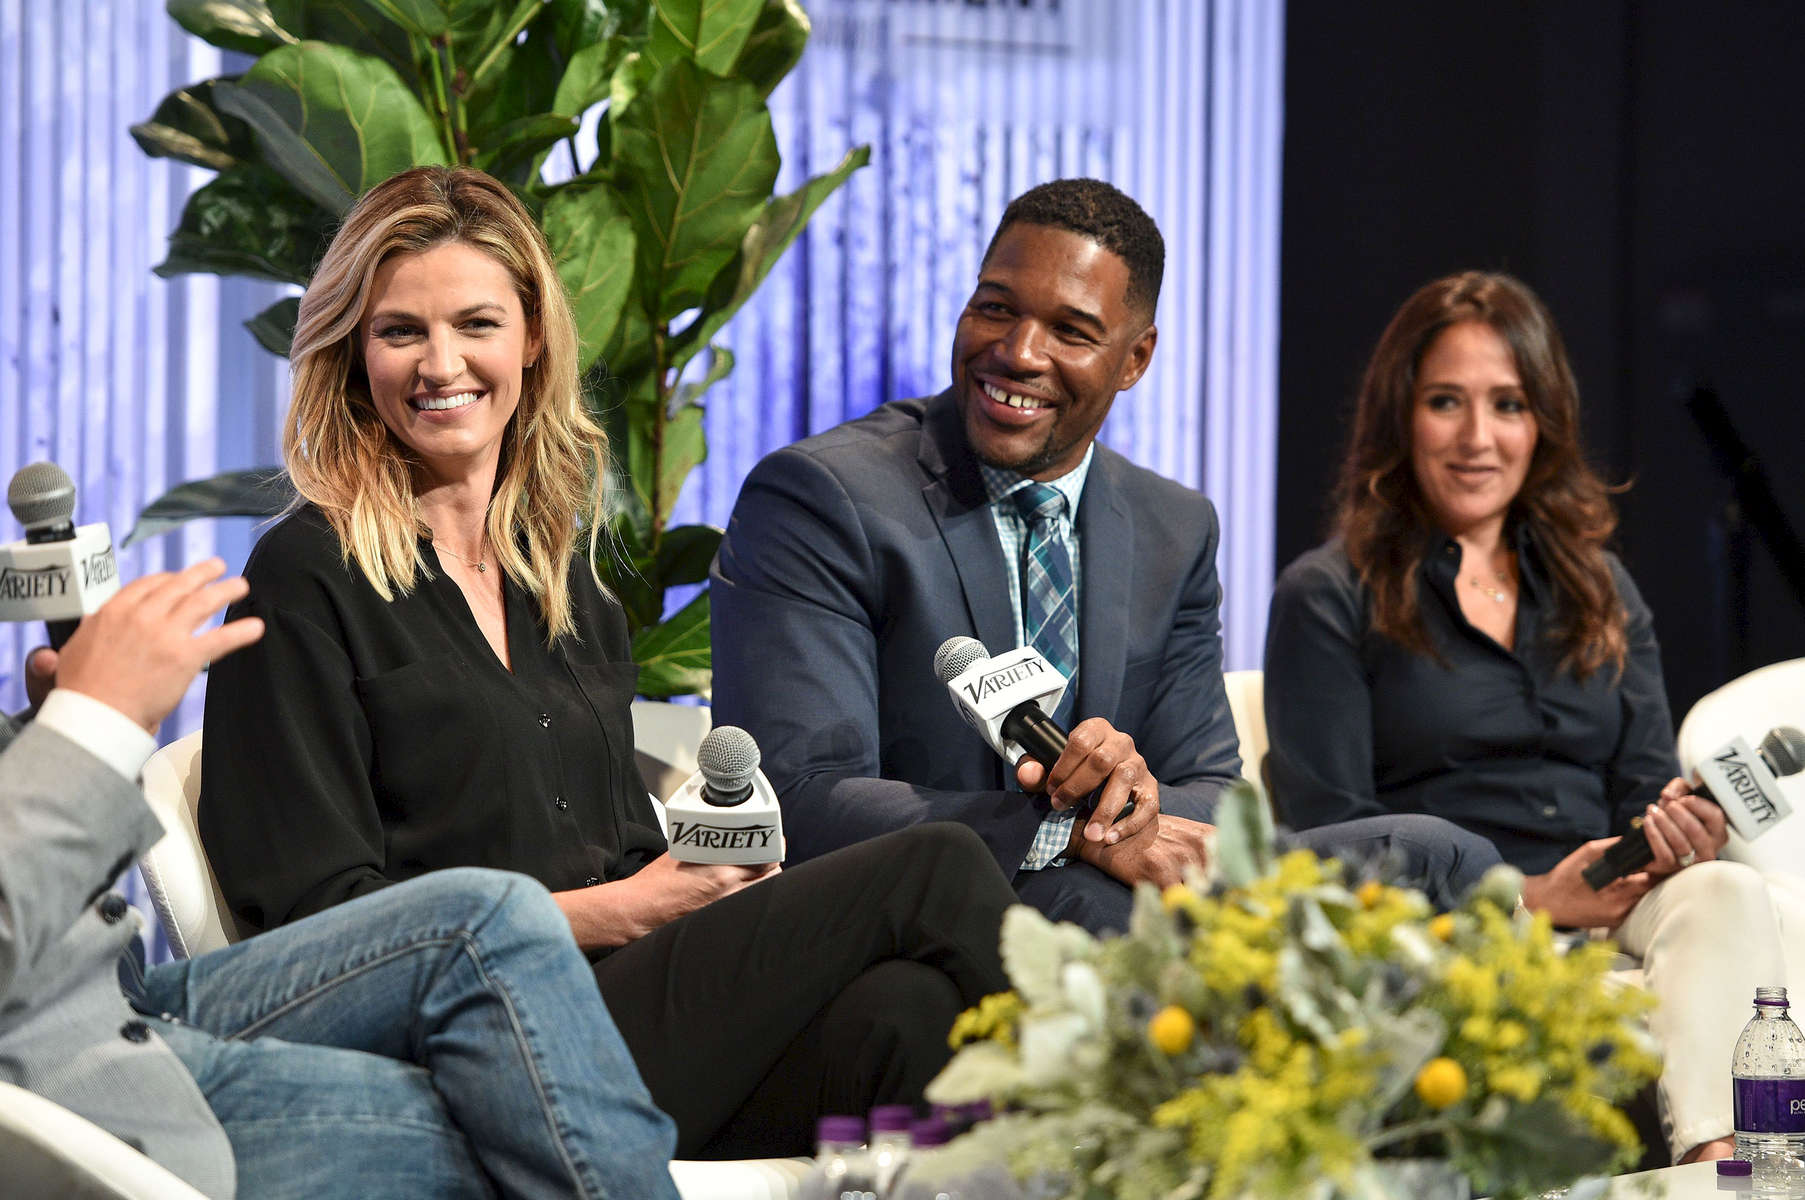 Mandatory Credit: Photo by Stewart Cook/Variety/REX/Shutterstock (8960146bq)Erin Andrews, Michael Strahan and Constance Schwartz-MoriniVariety Sports Entertainment Summit, Los Angeles, USA - 13 Jul 2017